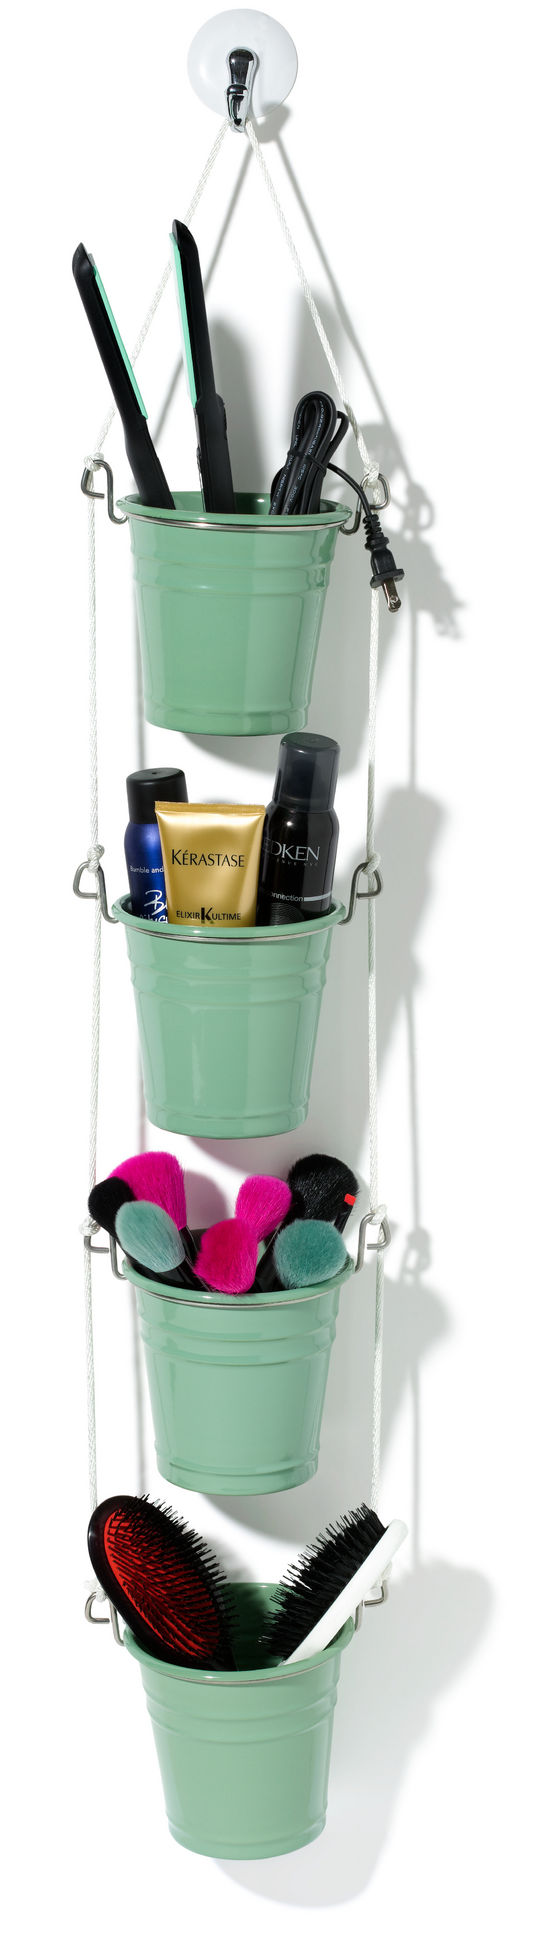 Beauty Hack: Cute Hanging Organizer for Your Supplies